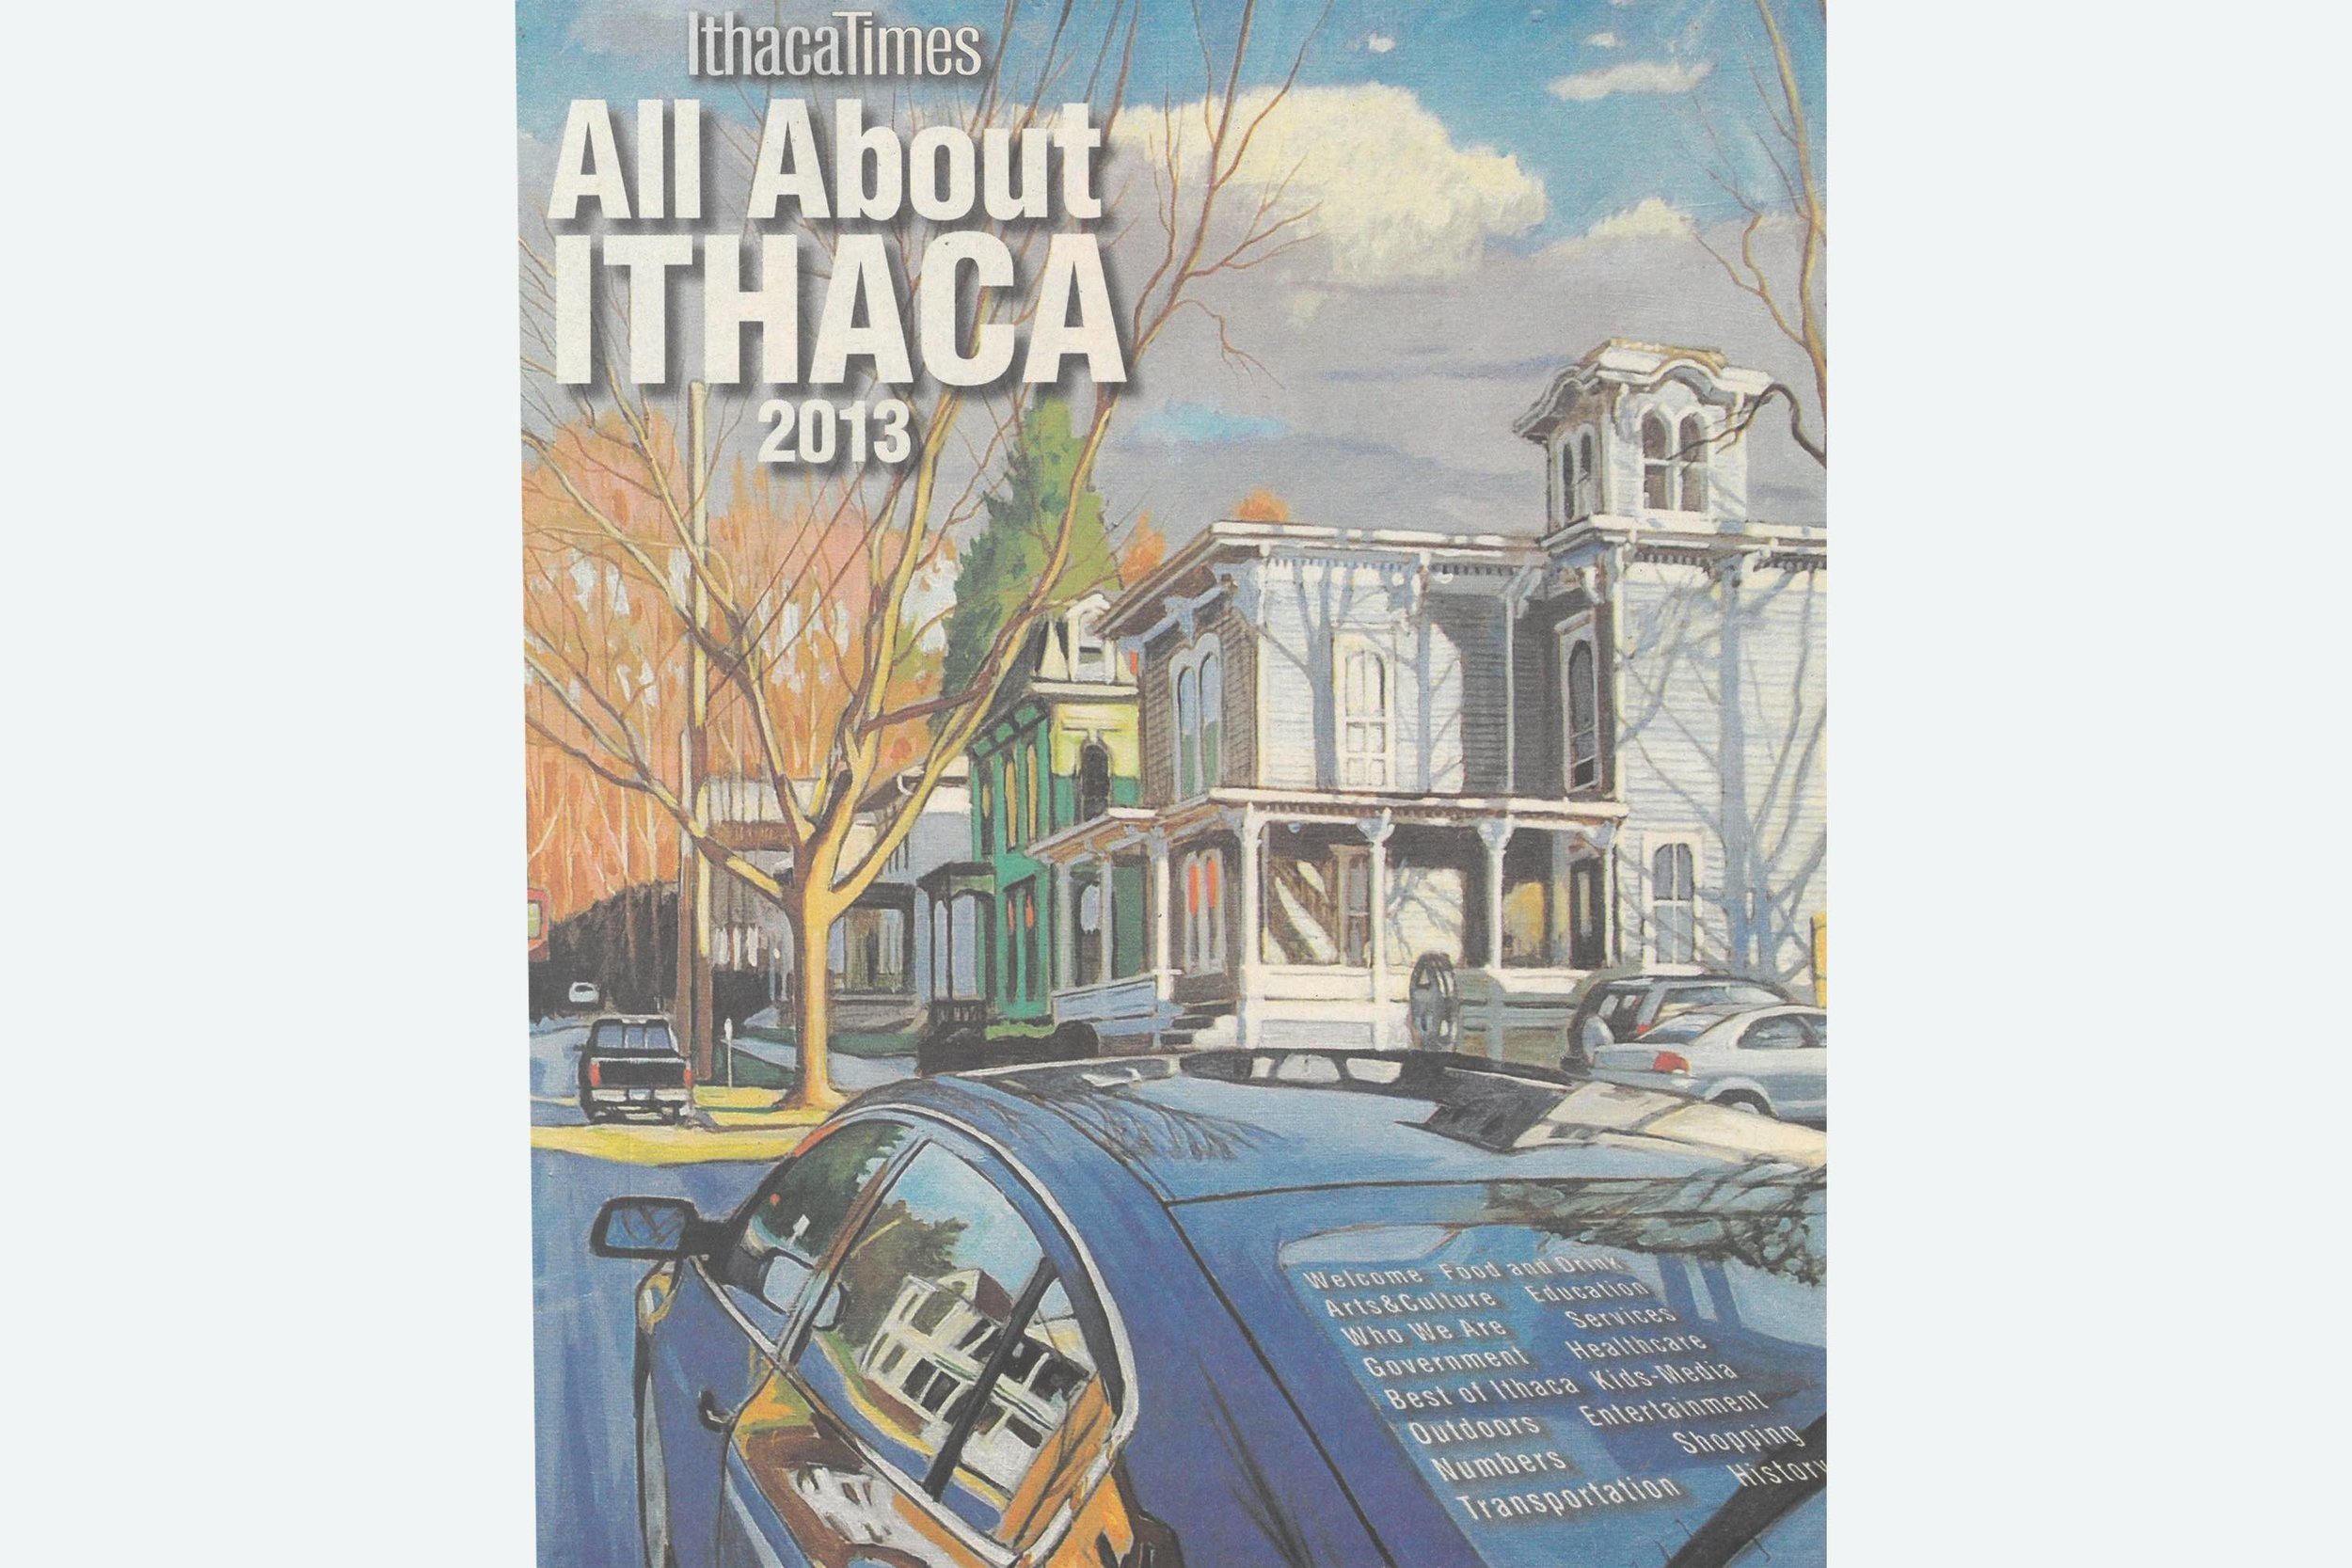 Courtesy of The Ithaca Times